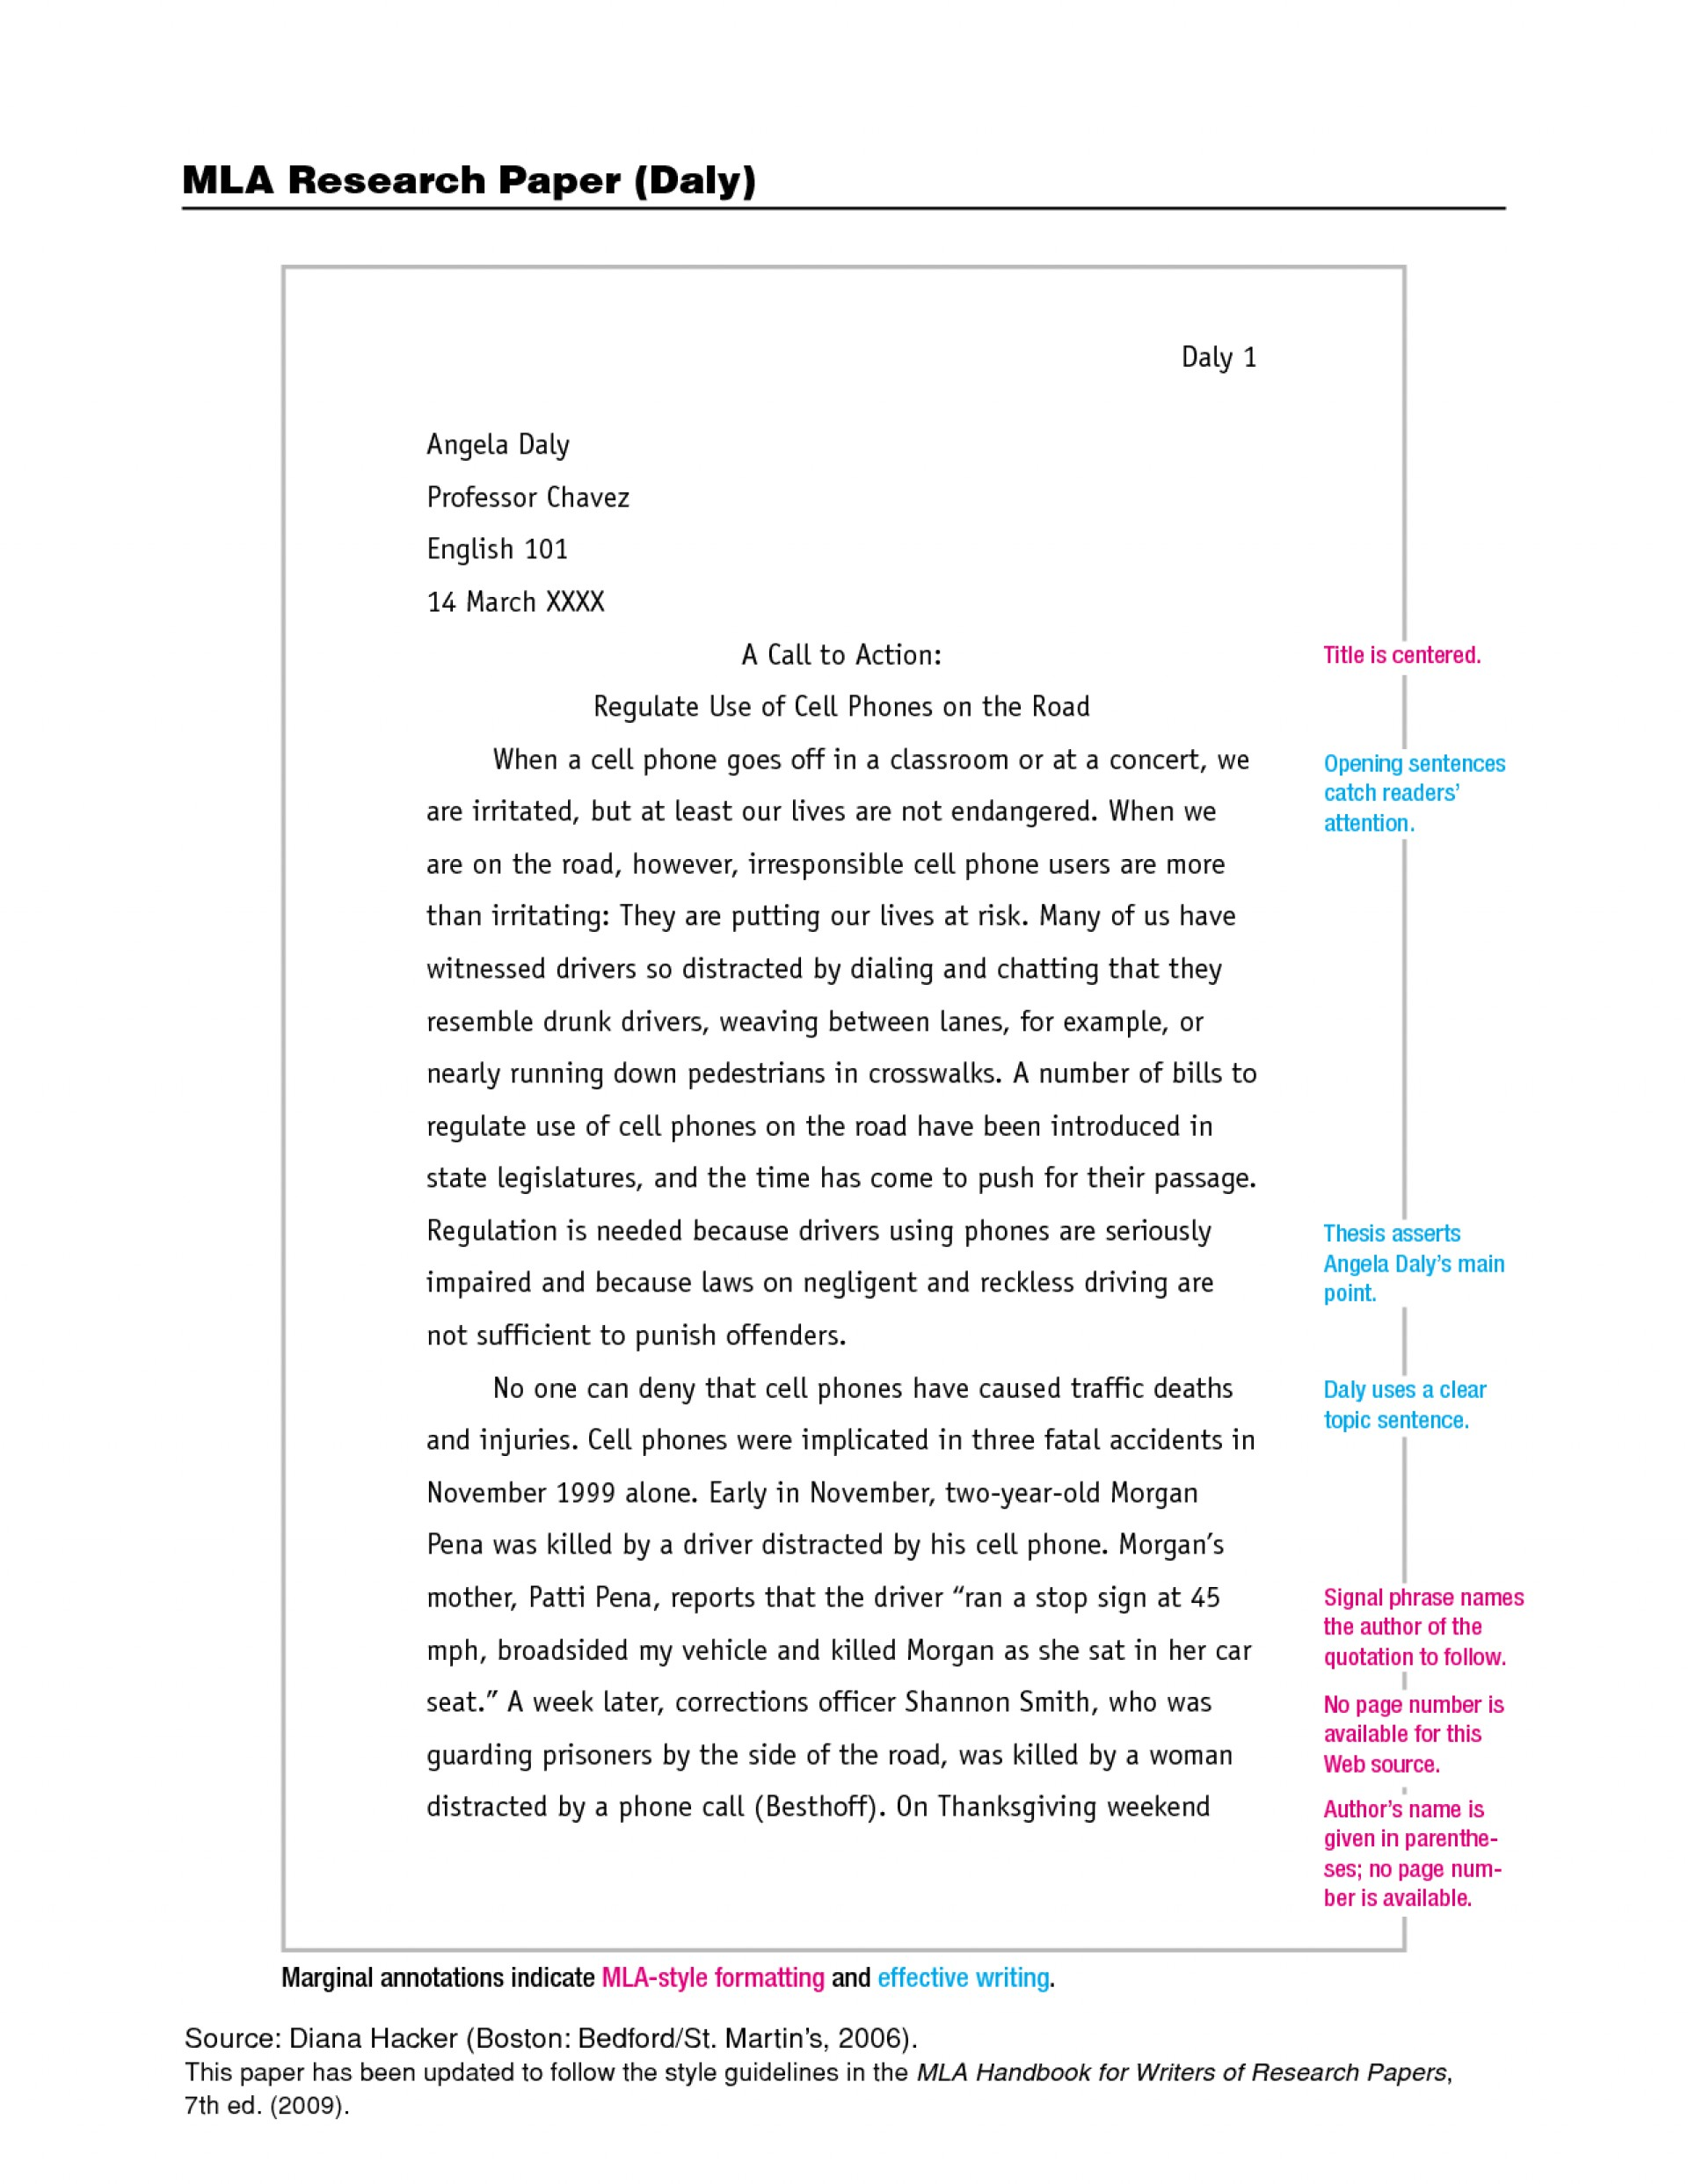 002 Research Paper Format Stunning Apa Writing Style Sample 2010 1920